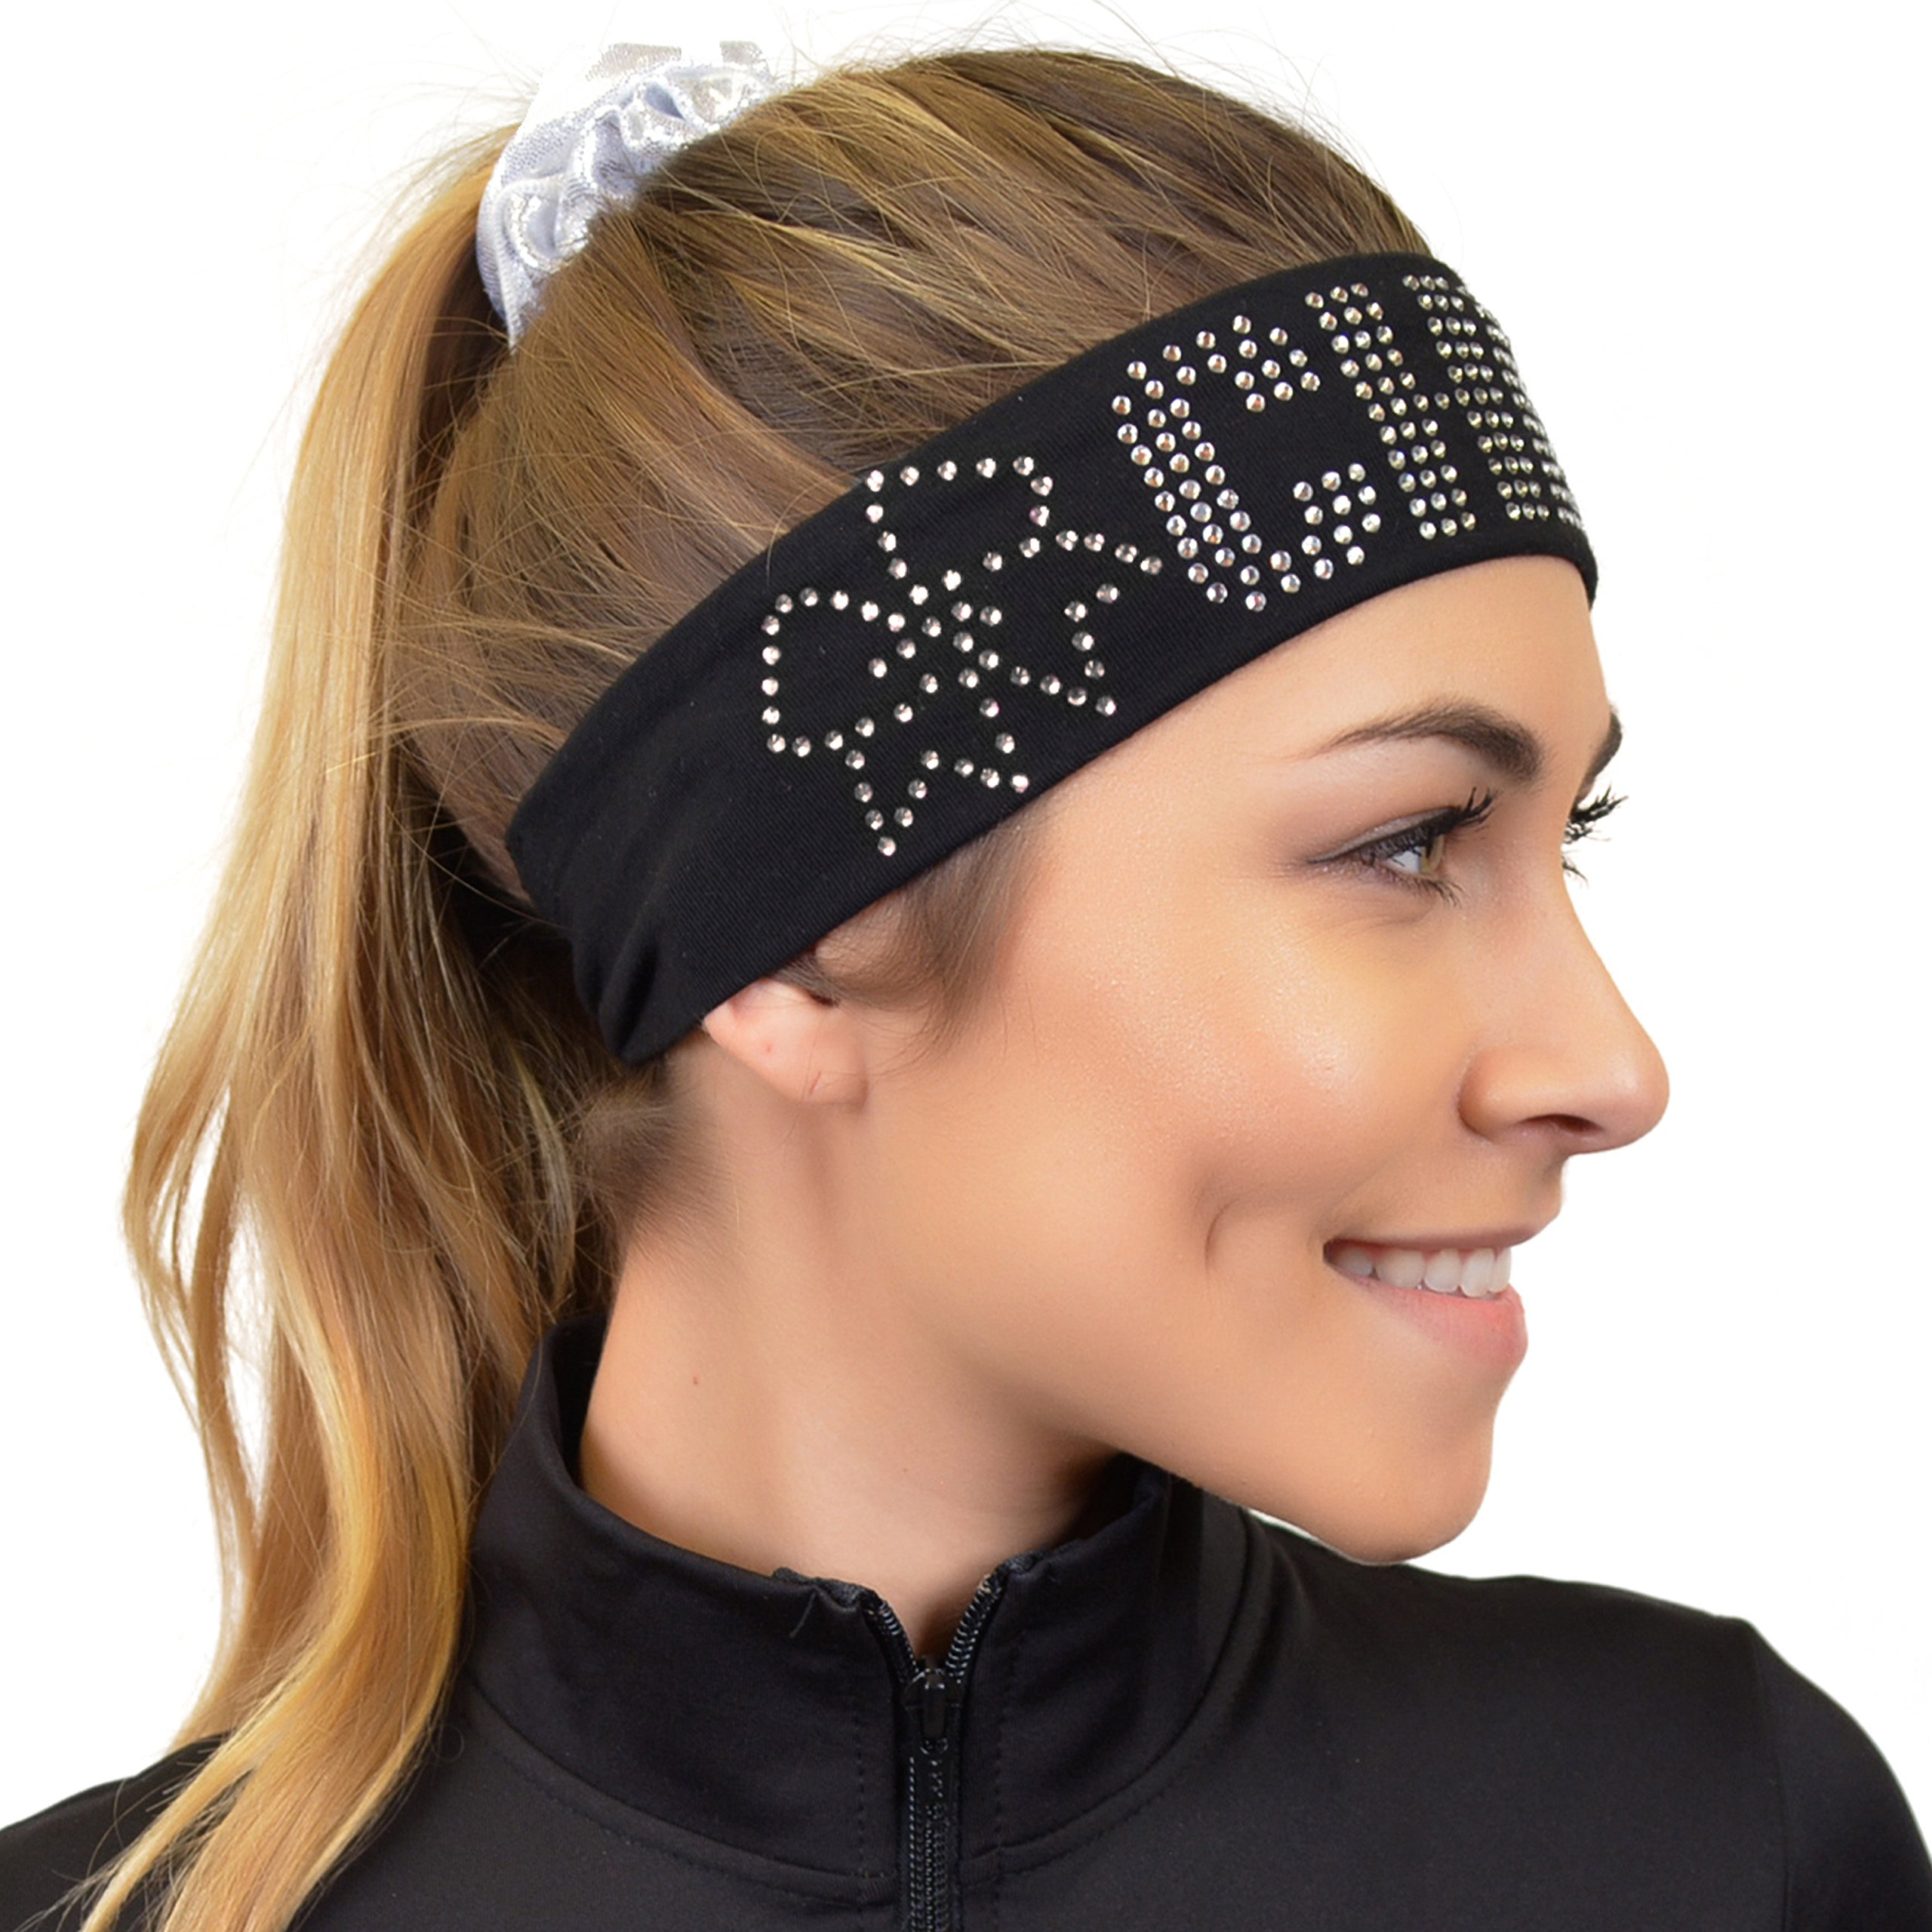 Stretch Is Comfort Girl's CHEER Rhinestone Wide Cotton Headband Black by Stretch is Comfort (Image #1)